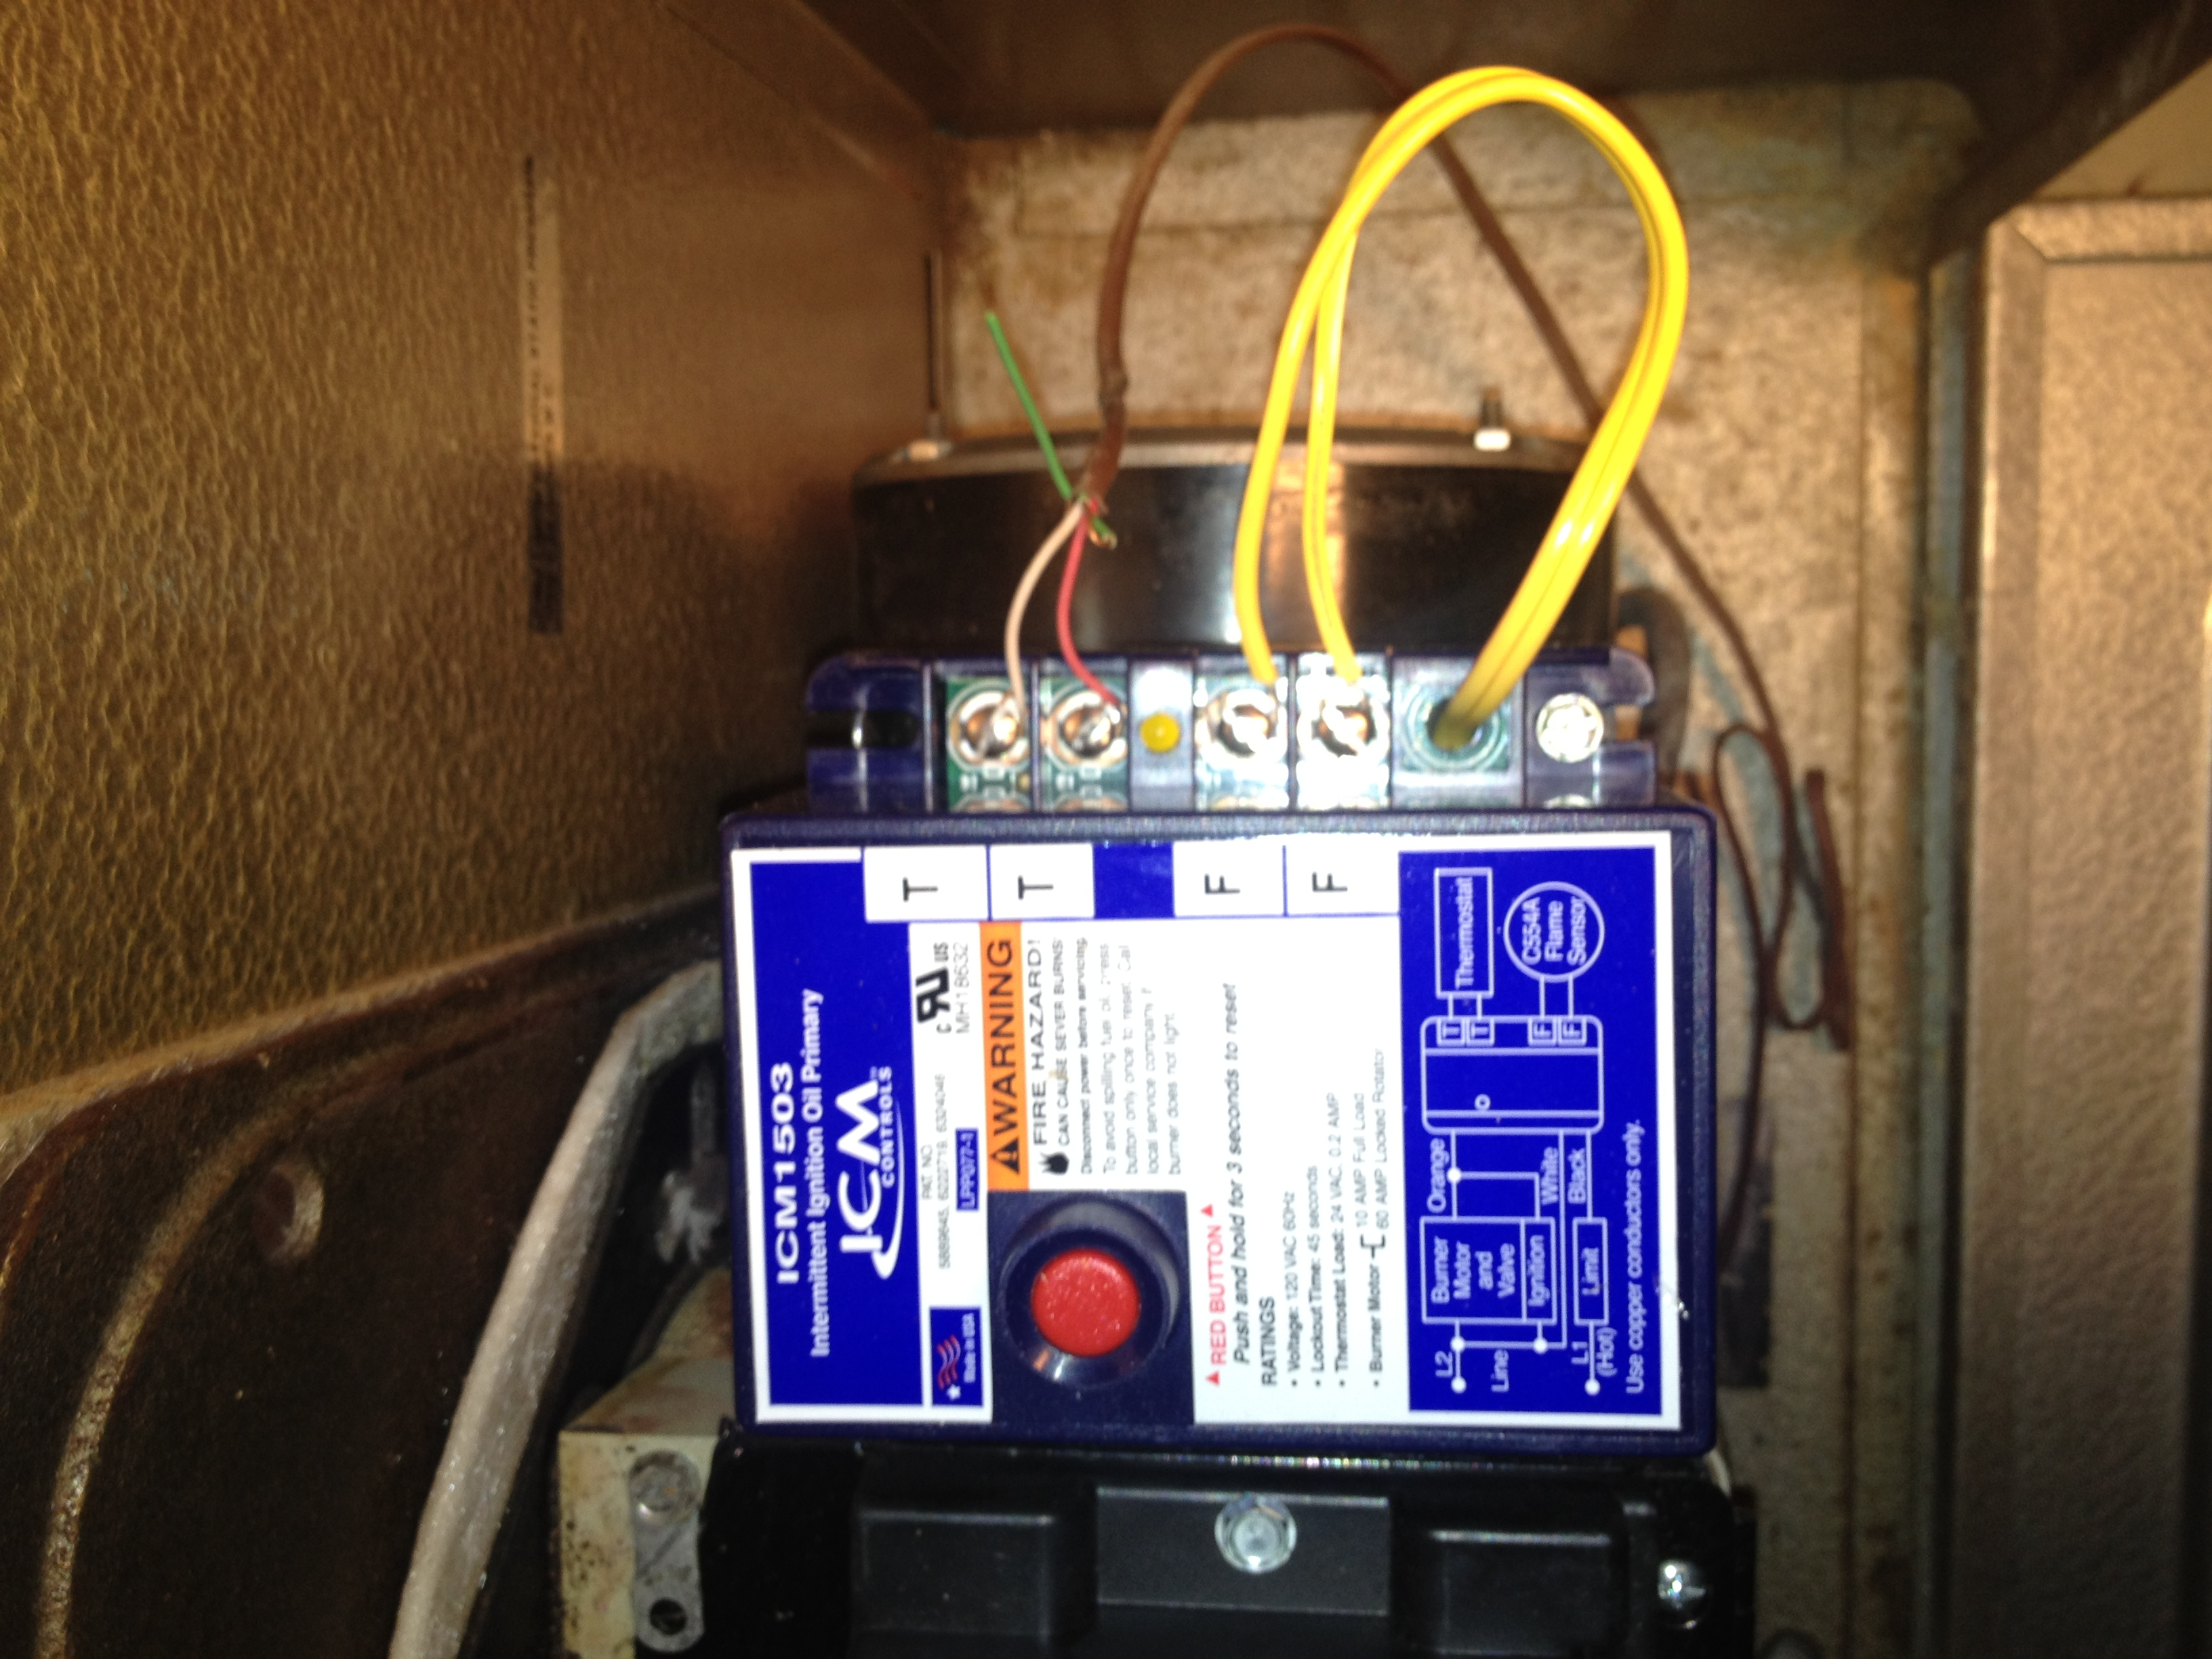 No C Terminal On Furnace To Connect Programmable Thermostat Wiring A